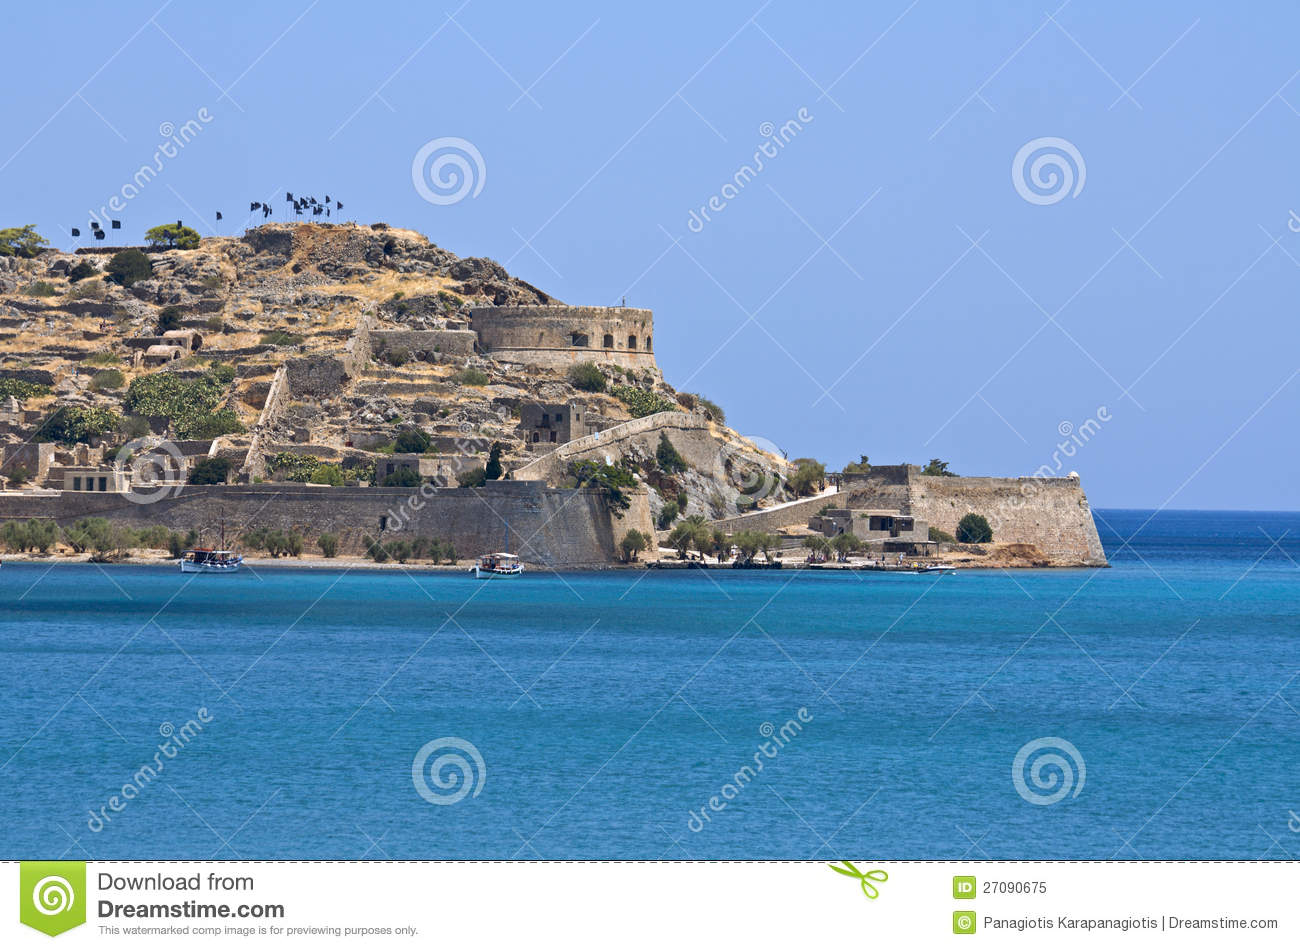 Crete Island Greece  city pictures gallery : ... island and fortress at Plaka, Elounda bay of Crete island in Greece